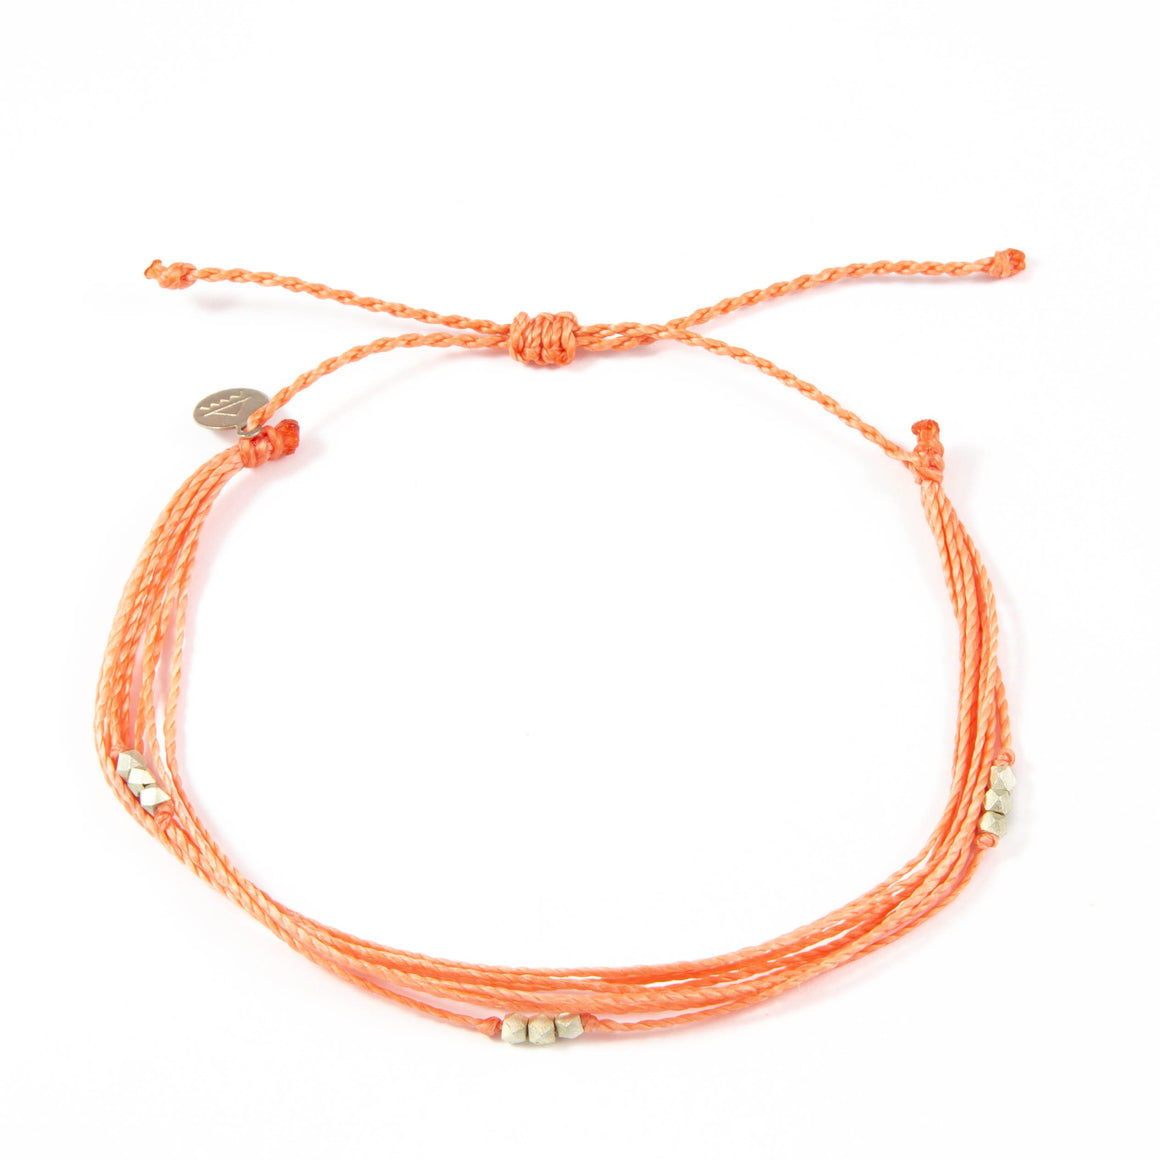 Coral Macua in Silver Anklet